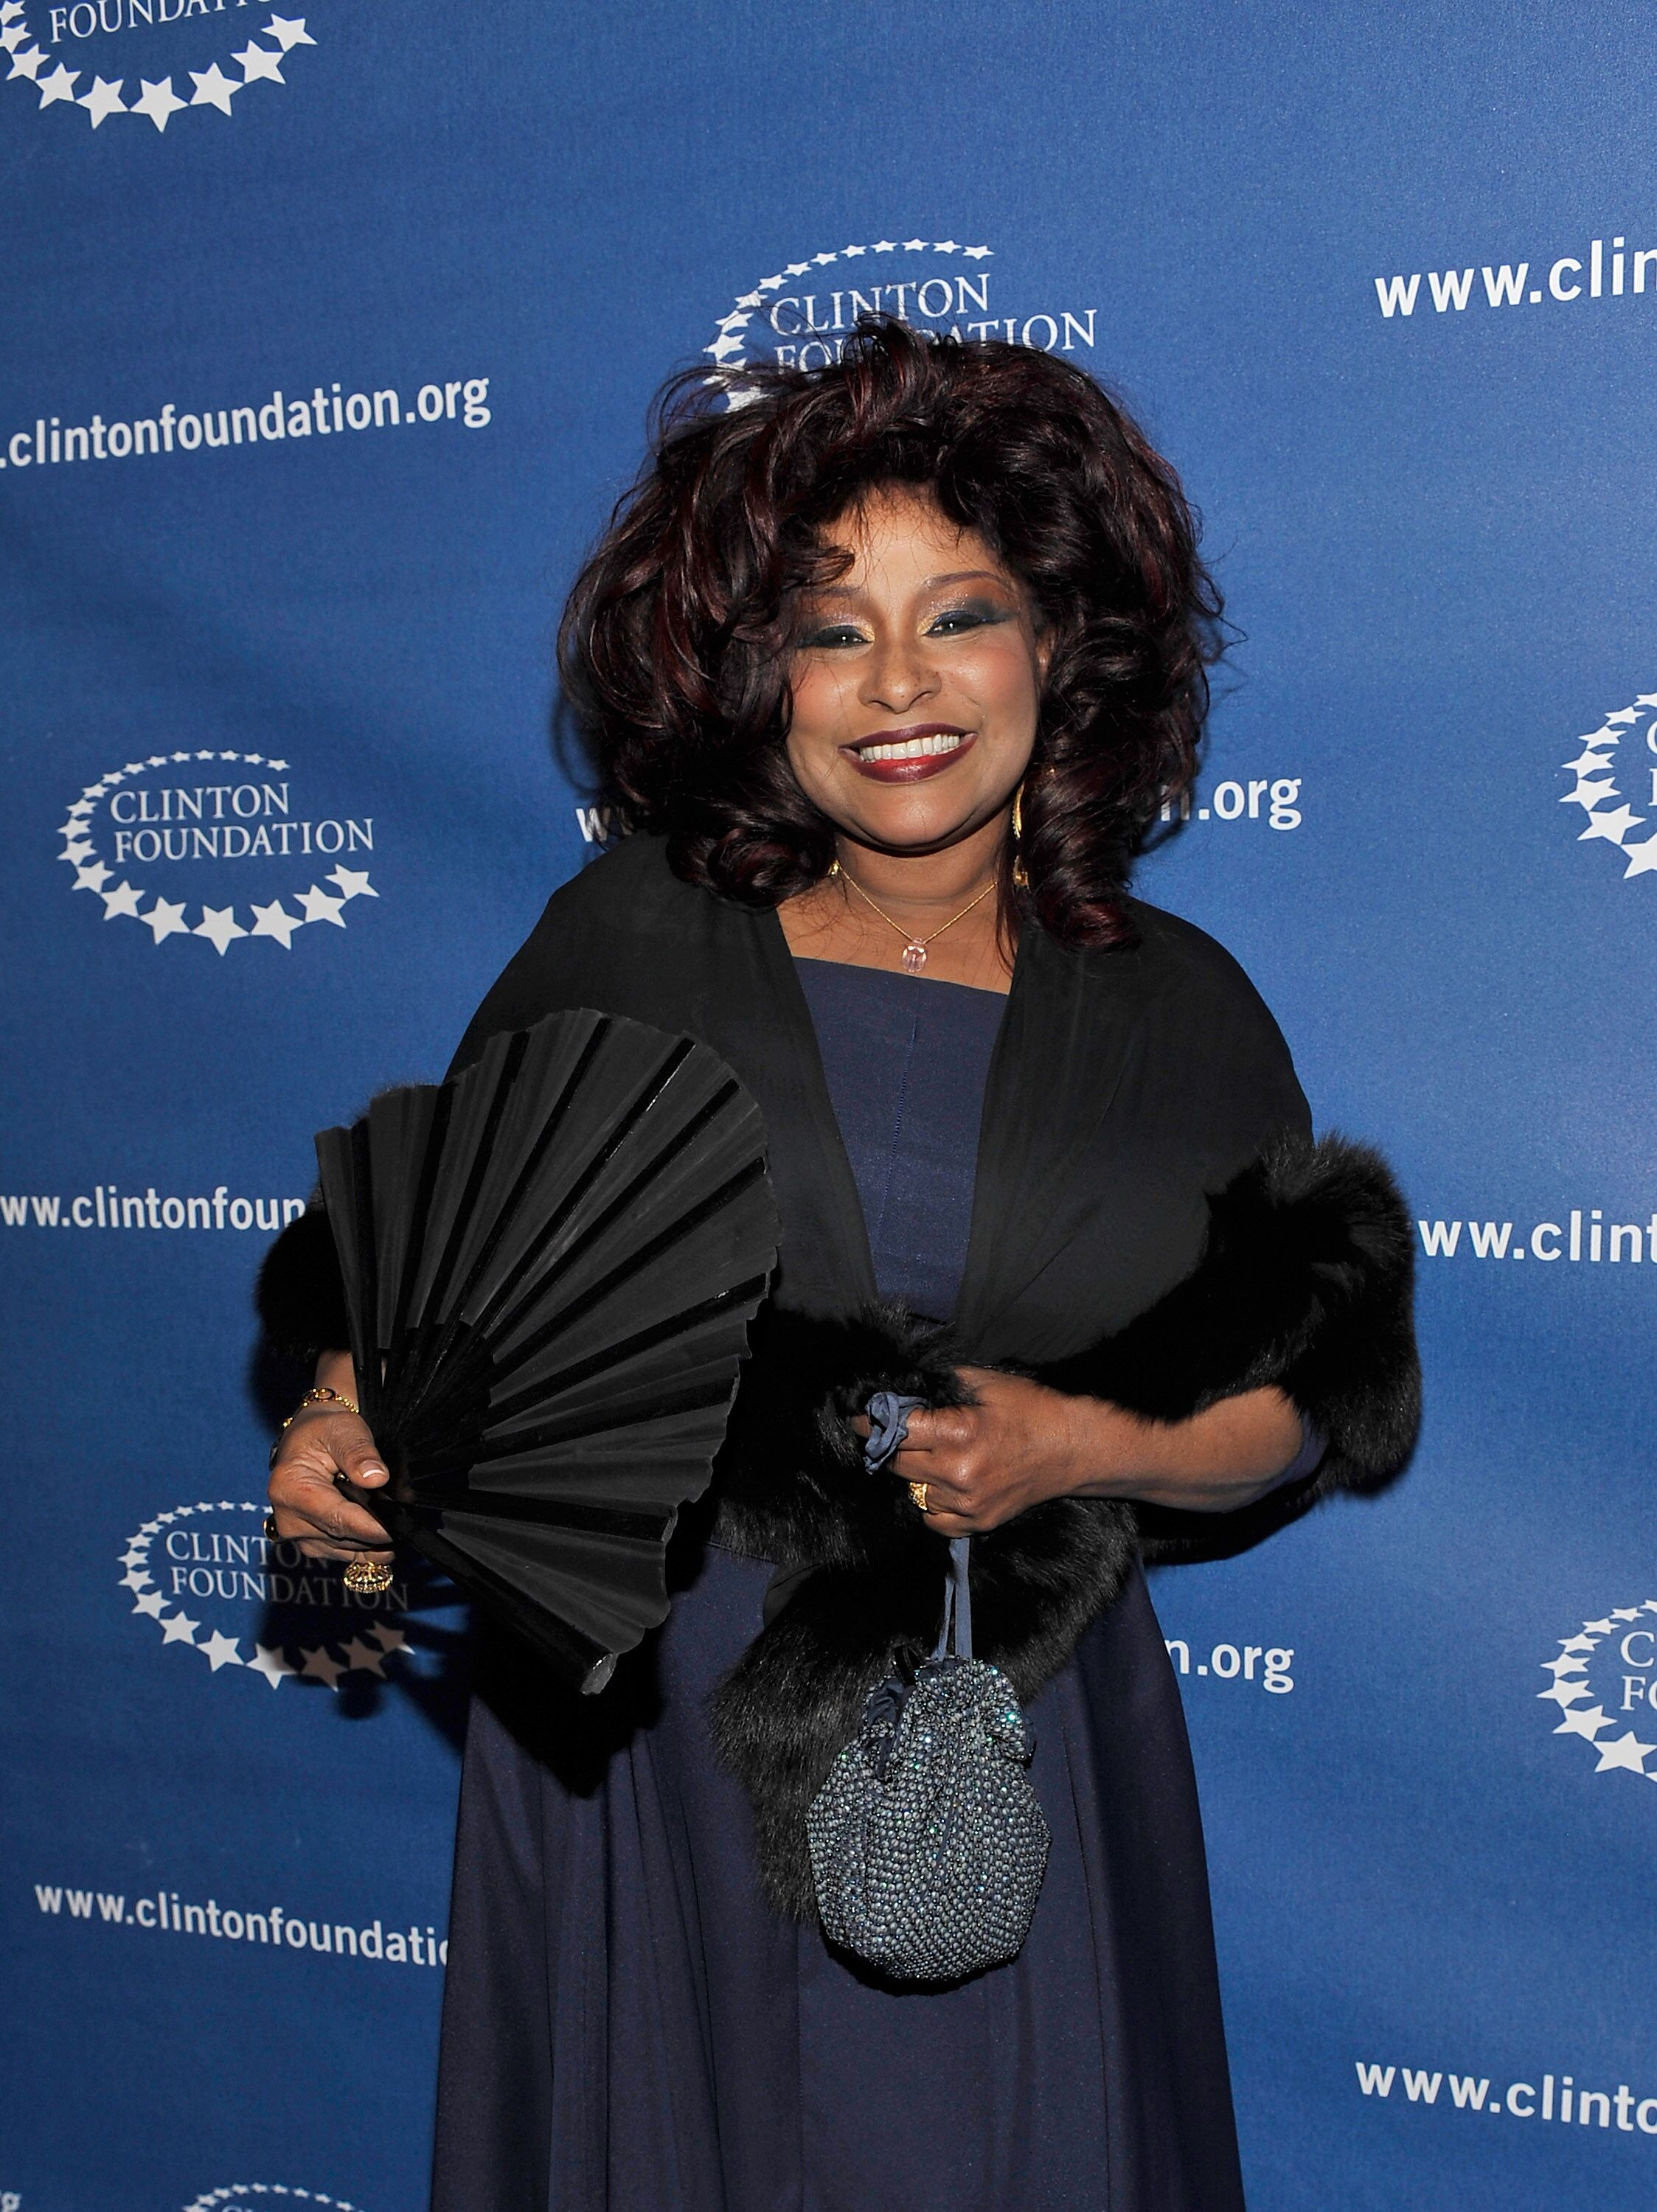 Chaka Khan enjoying a Clinton Foundation Event | Source: Getty Images/GlobalImagesUkraine